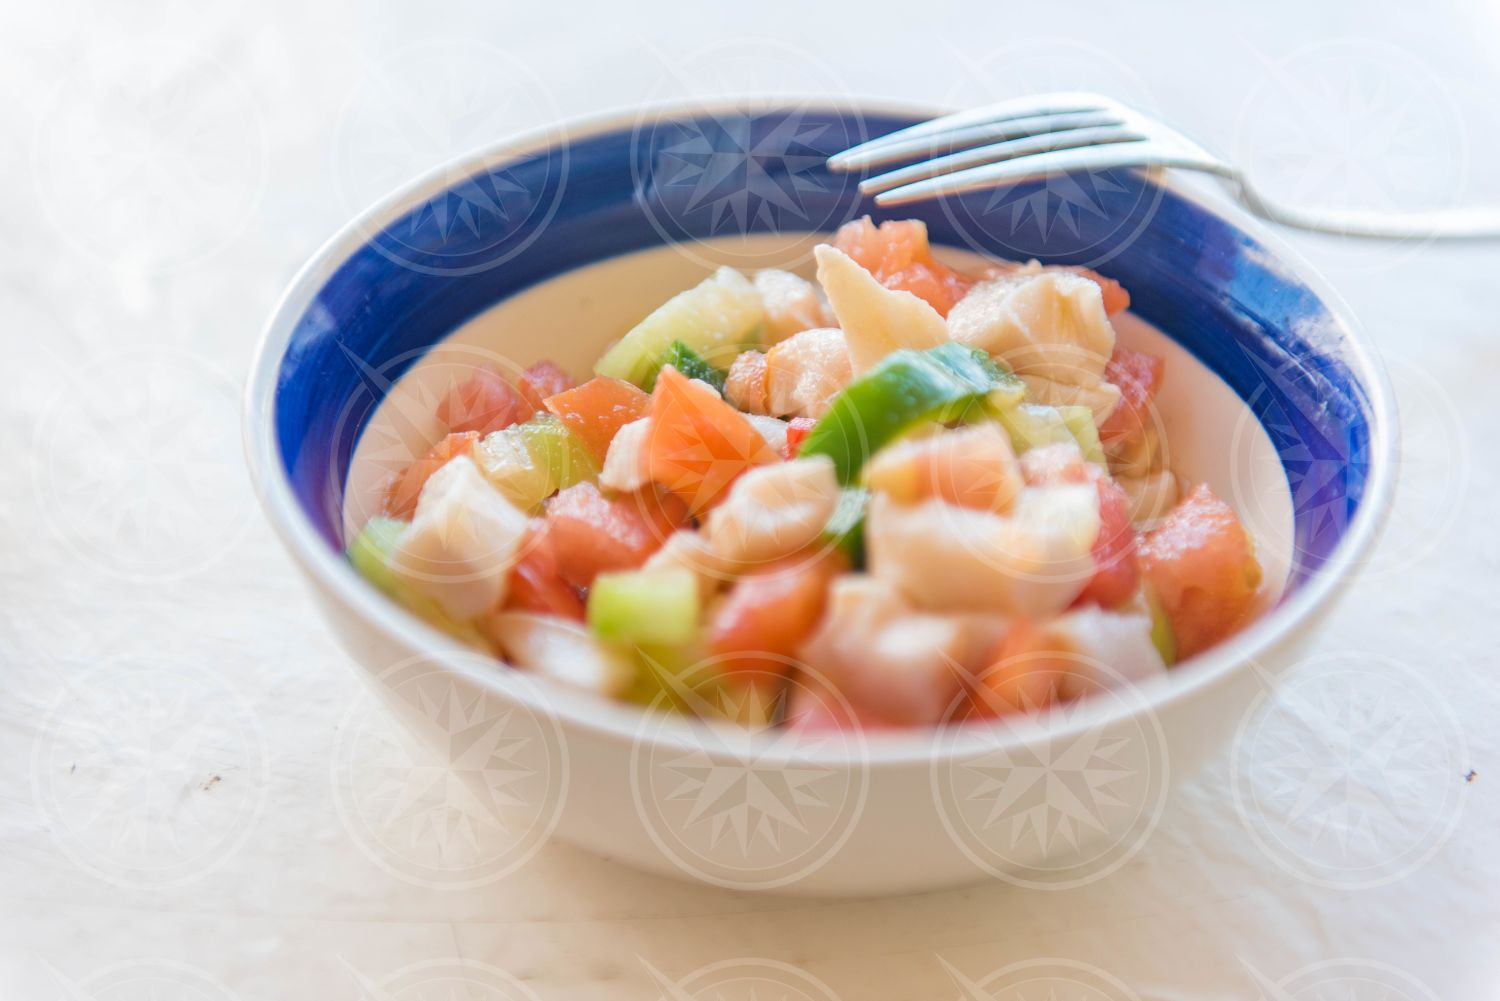 Conch salad in bowl